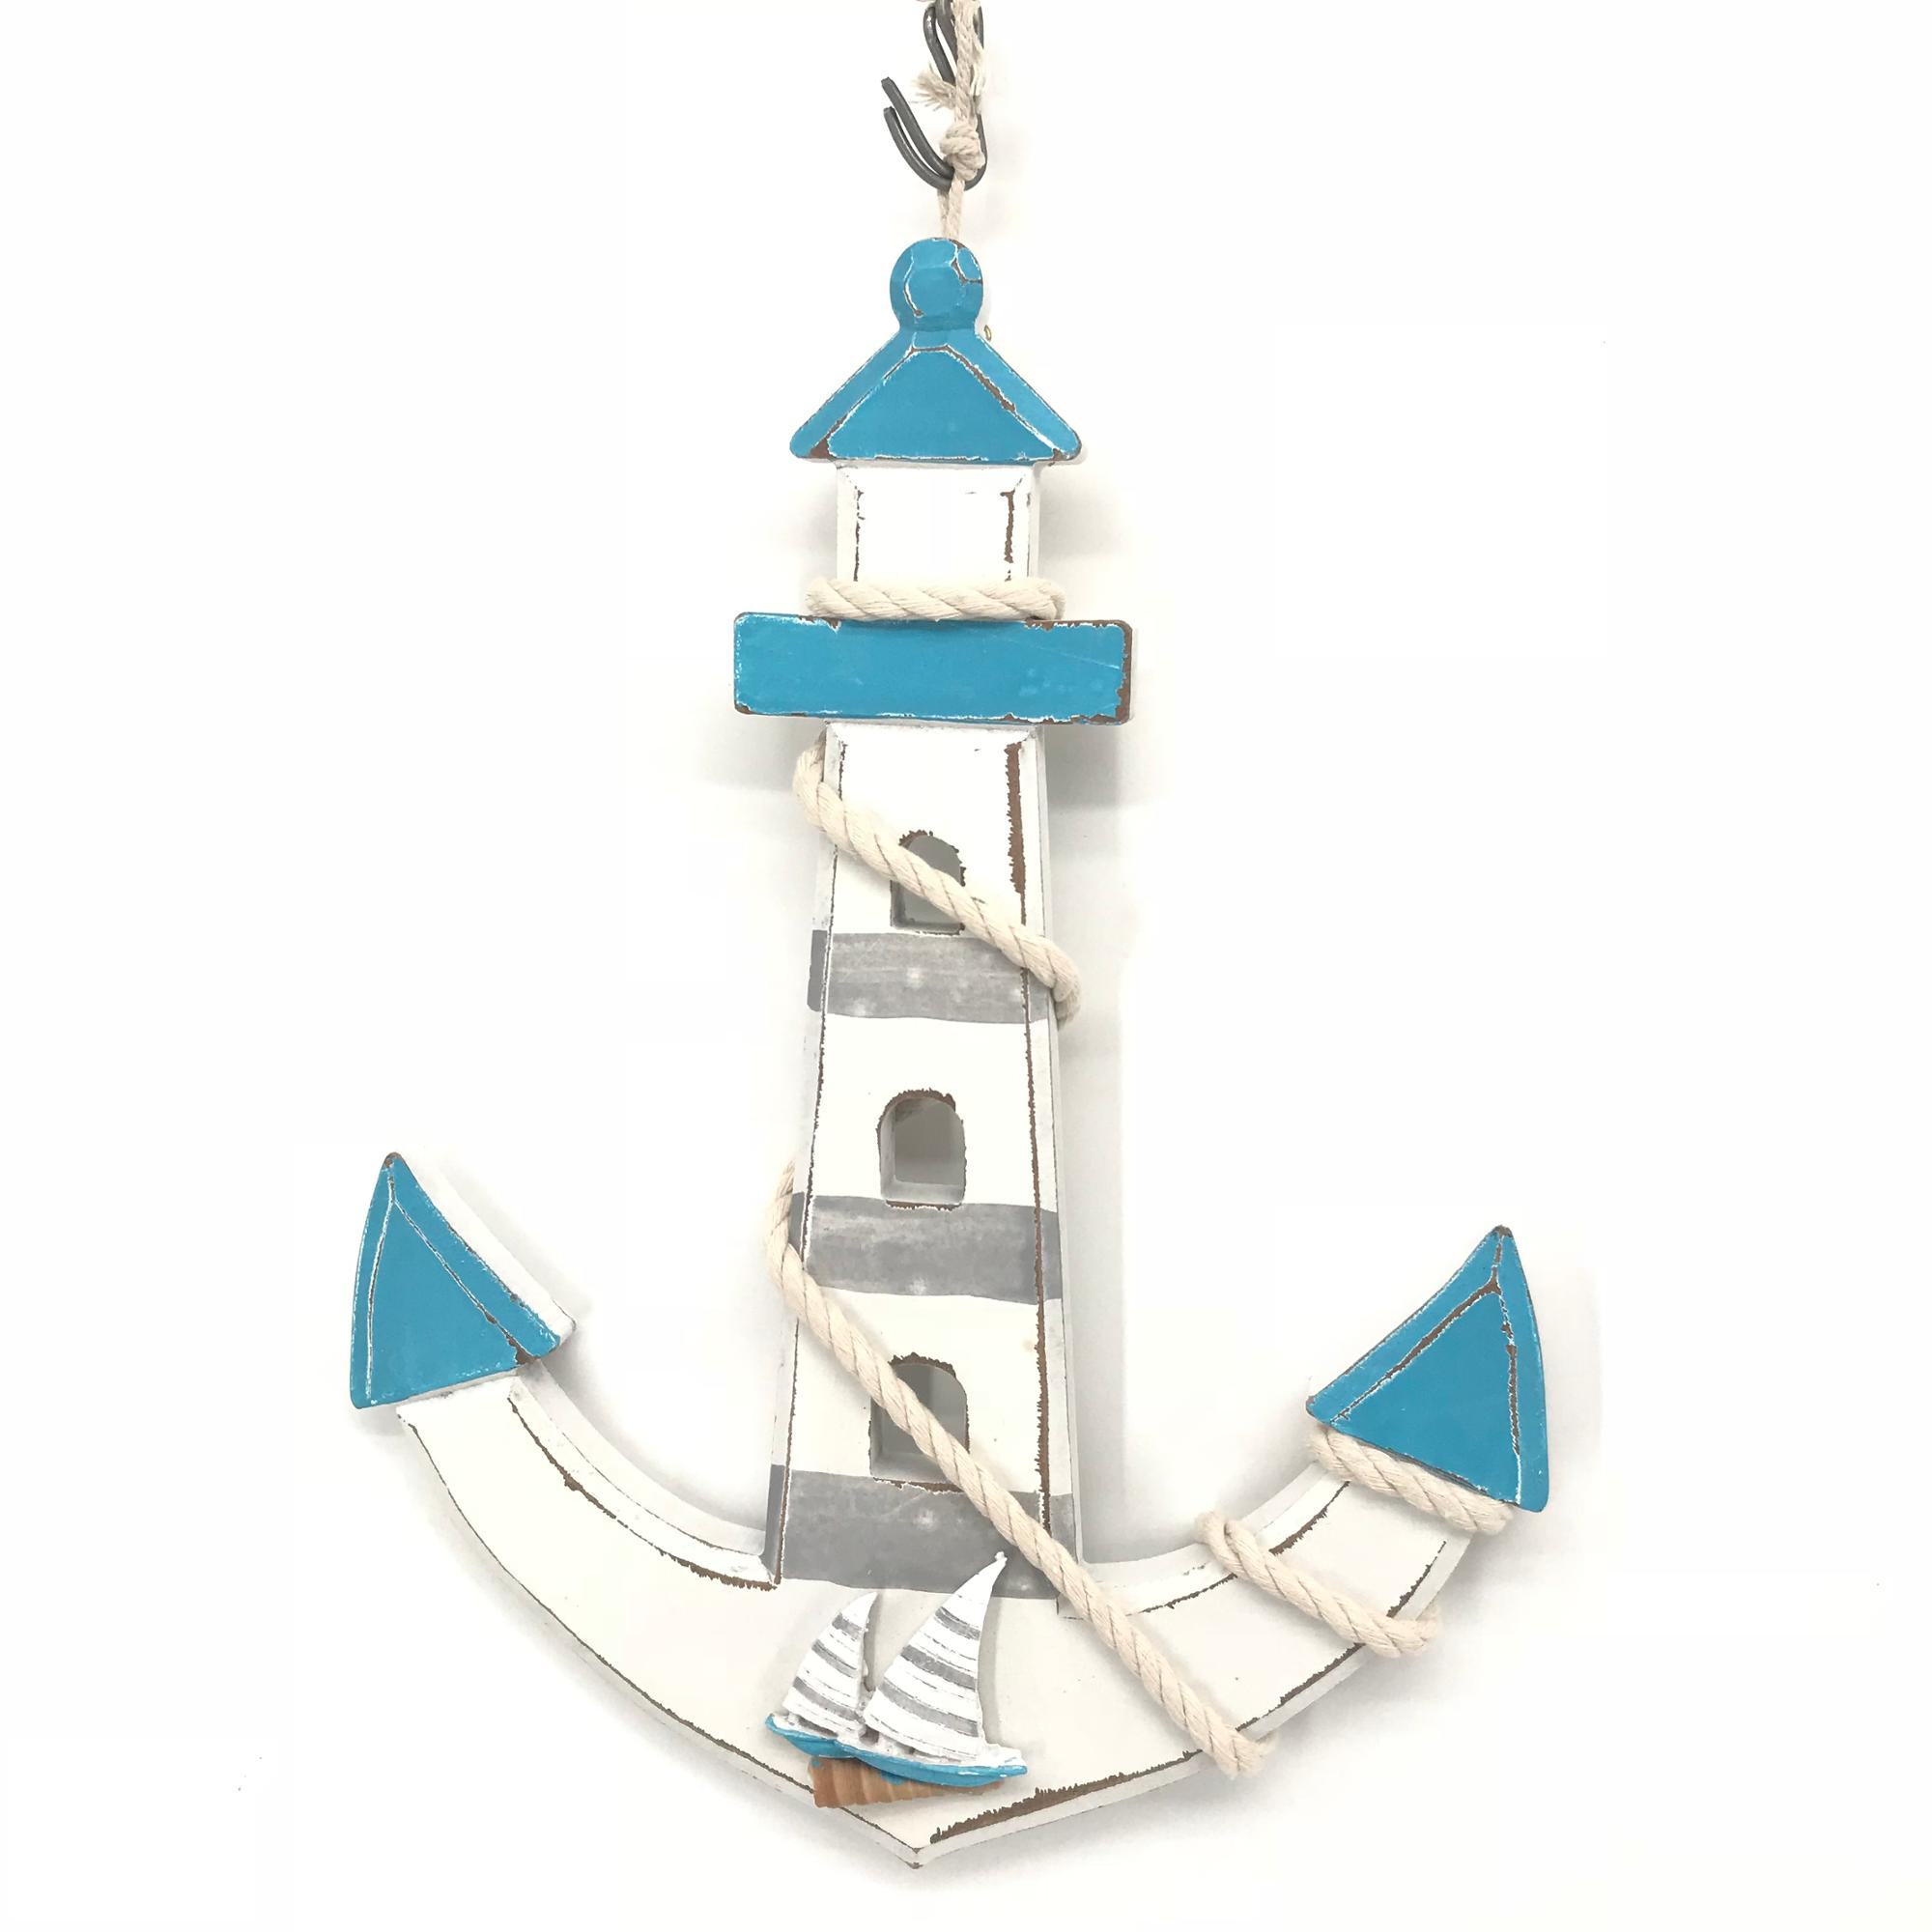 2018 new design product Nautical Antique Colored Sailor's wood anchor